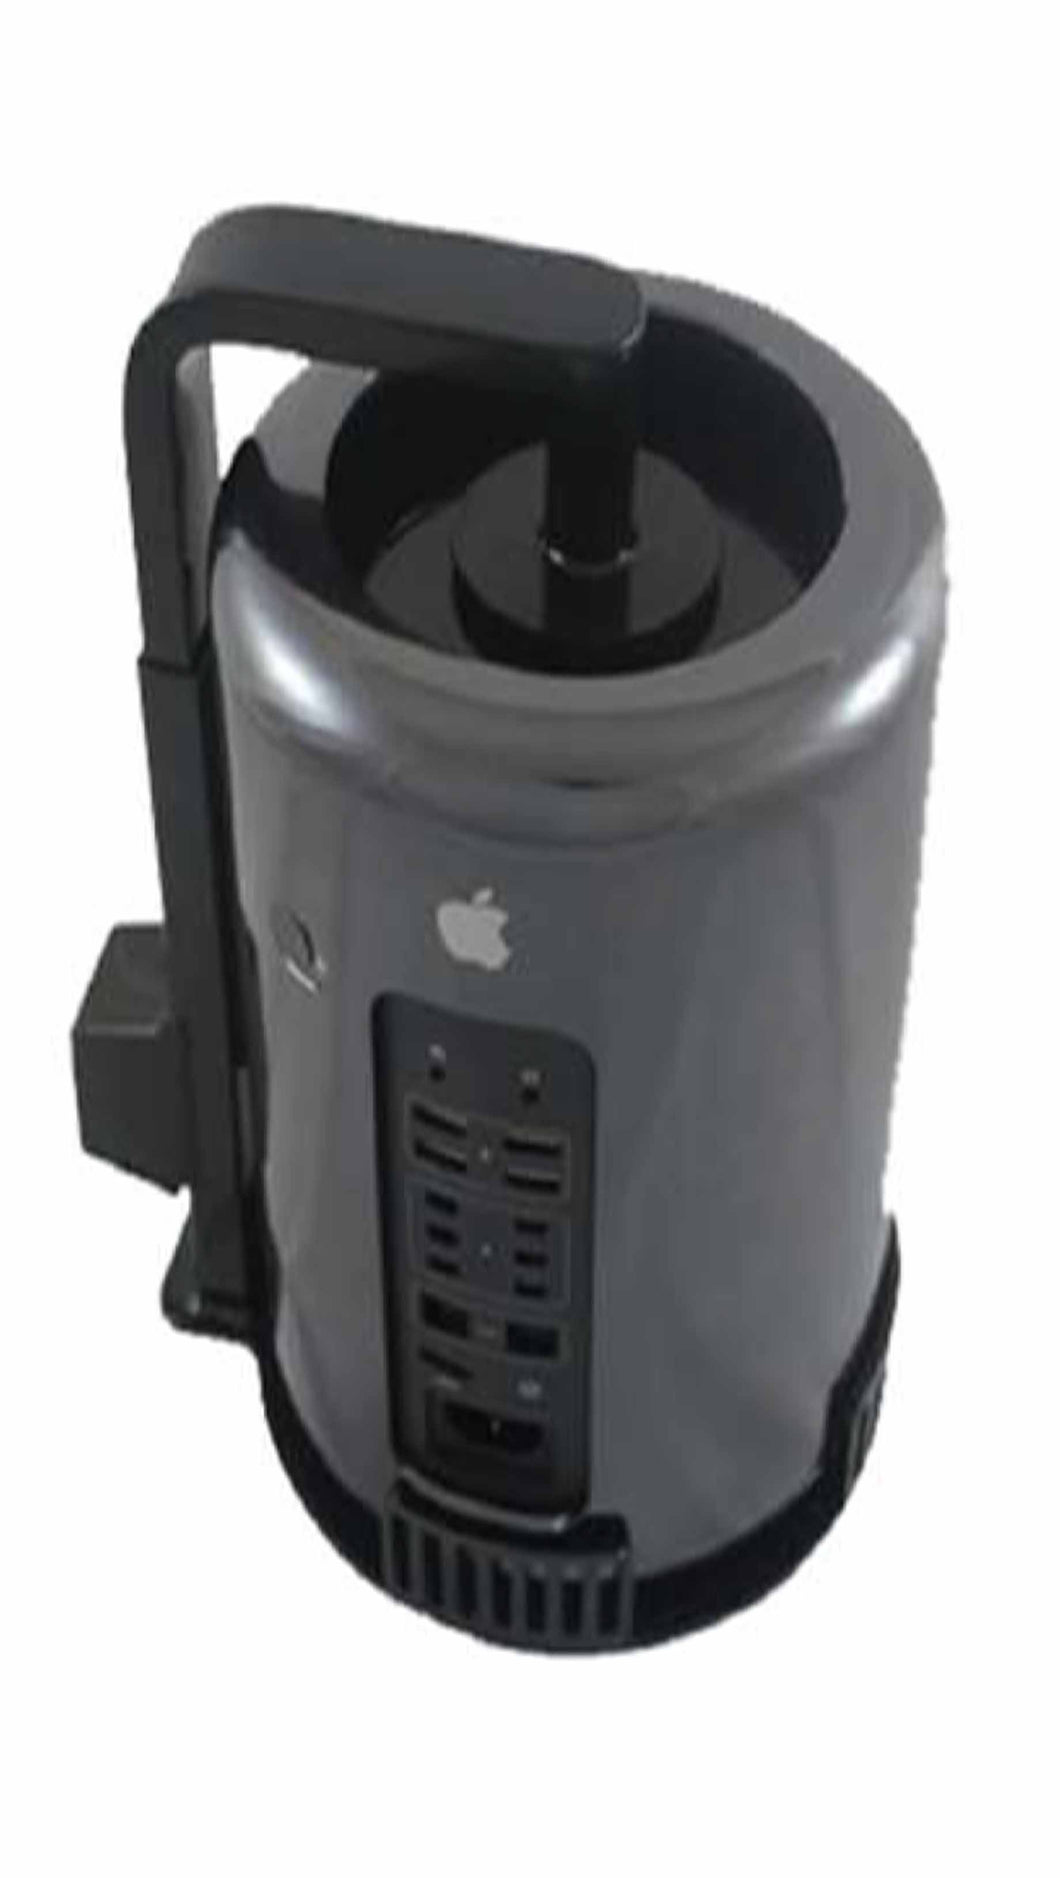 Apple Mac Pro security